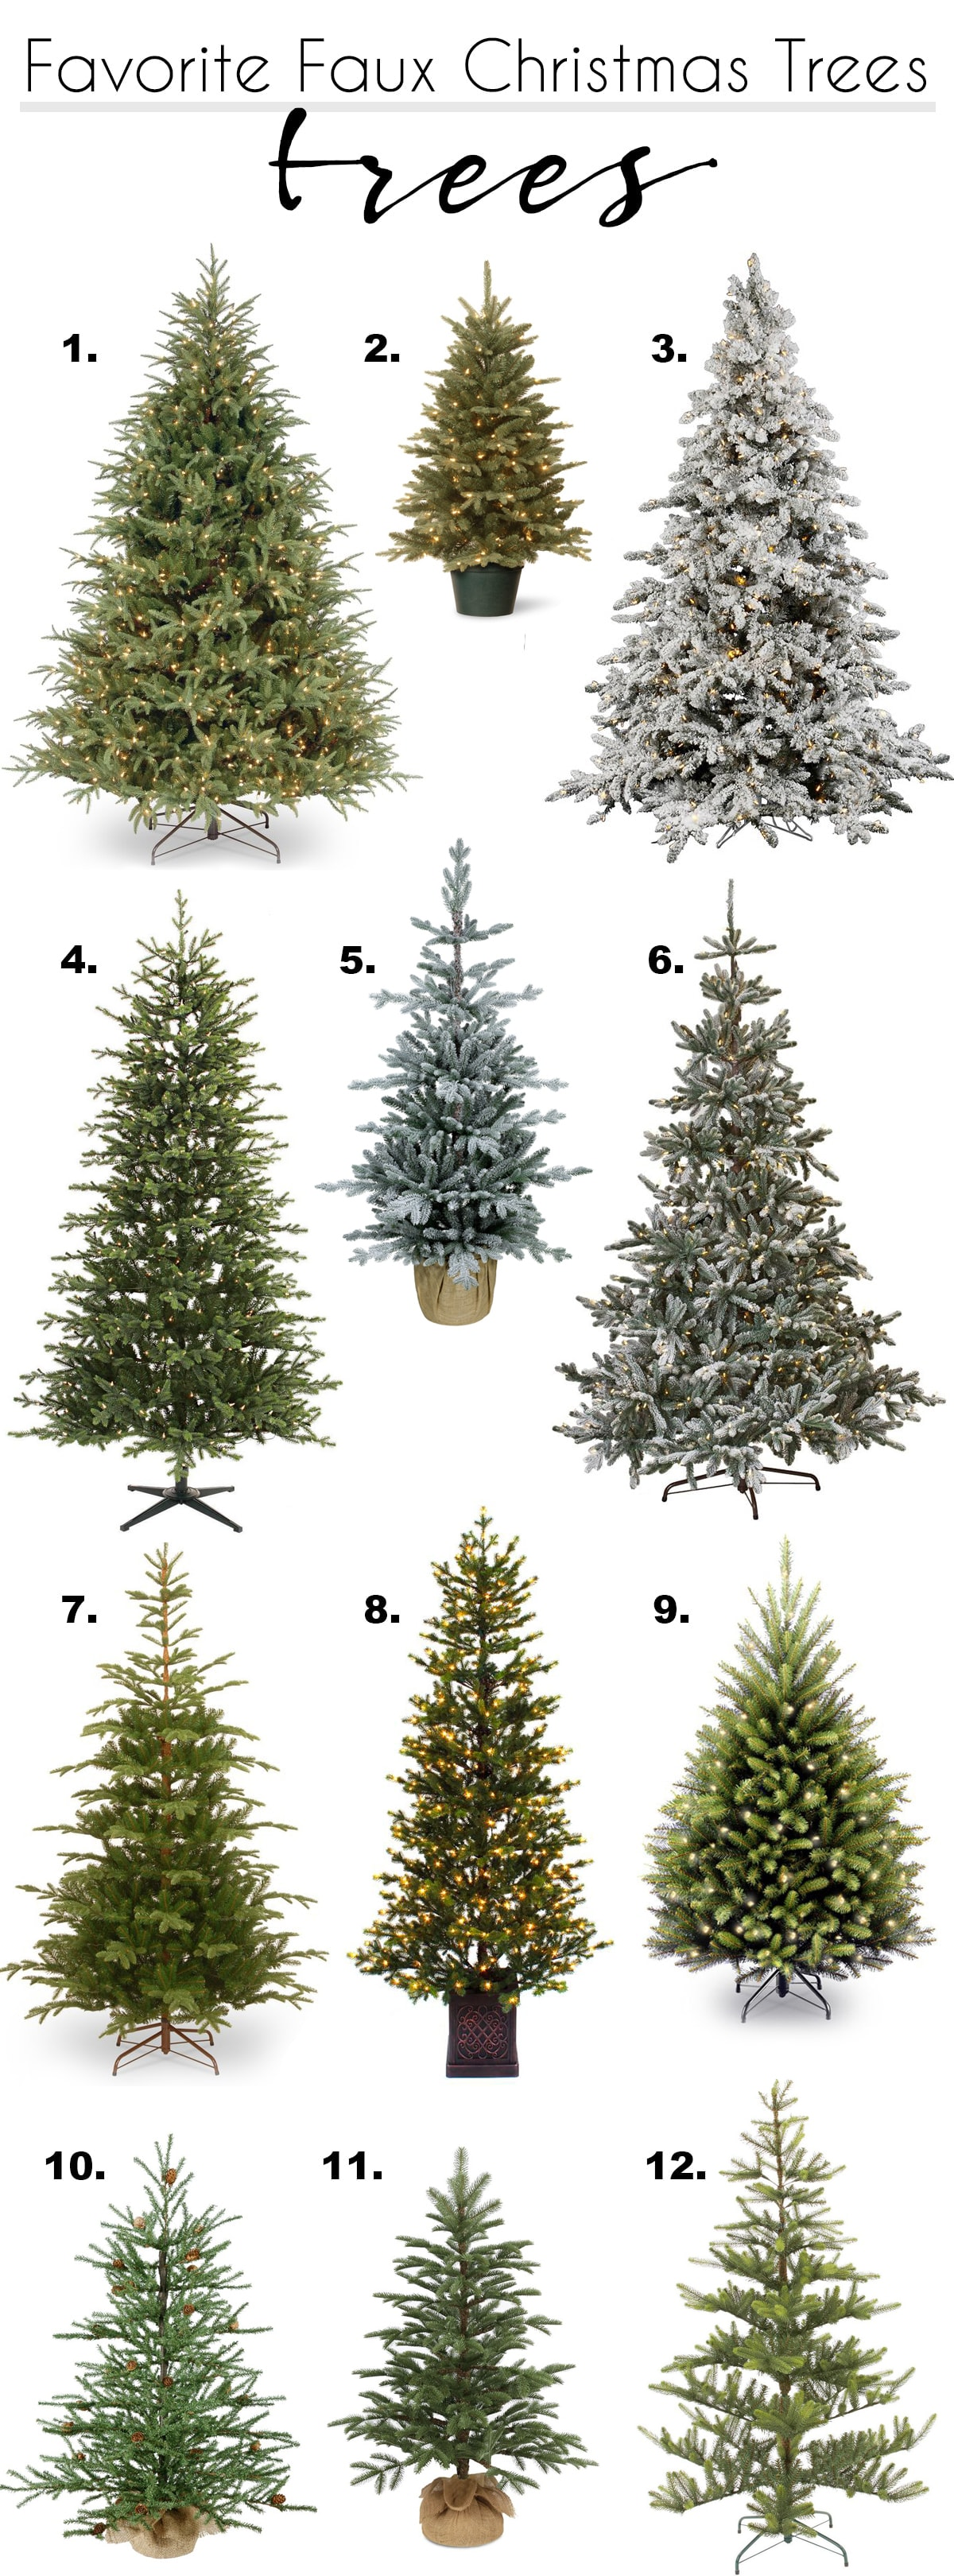 my favorite faux Christmas trees